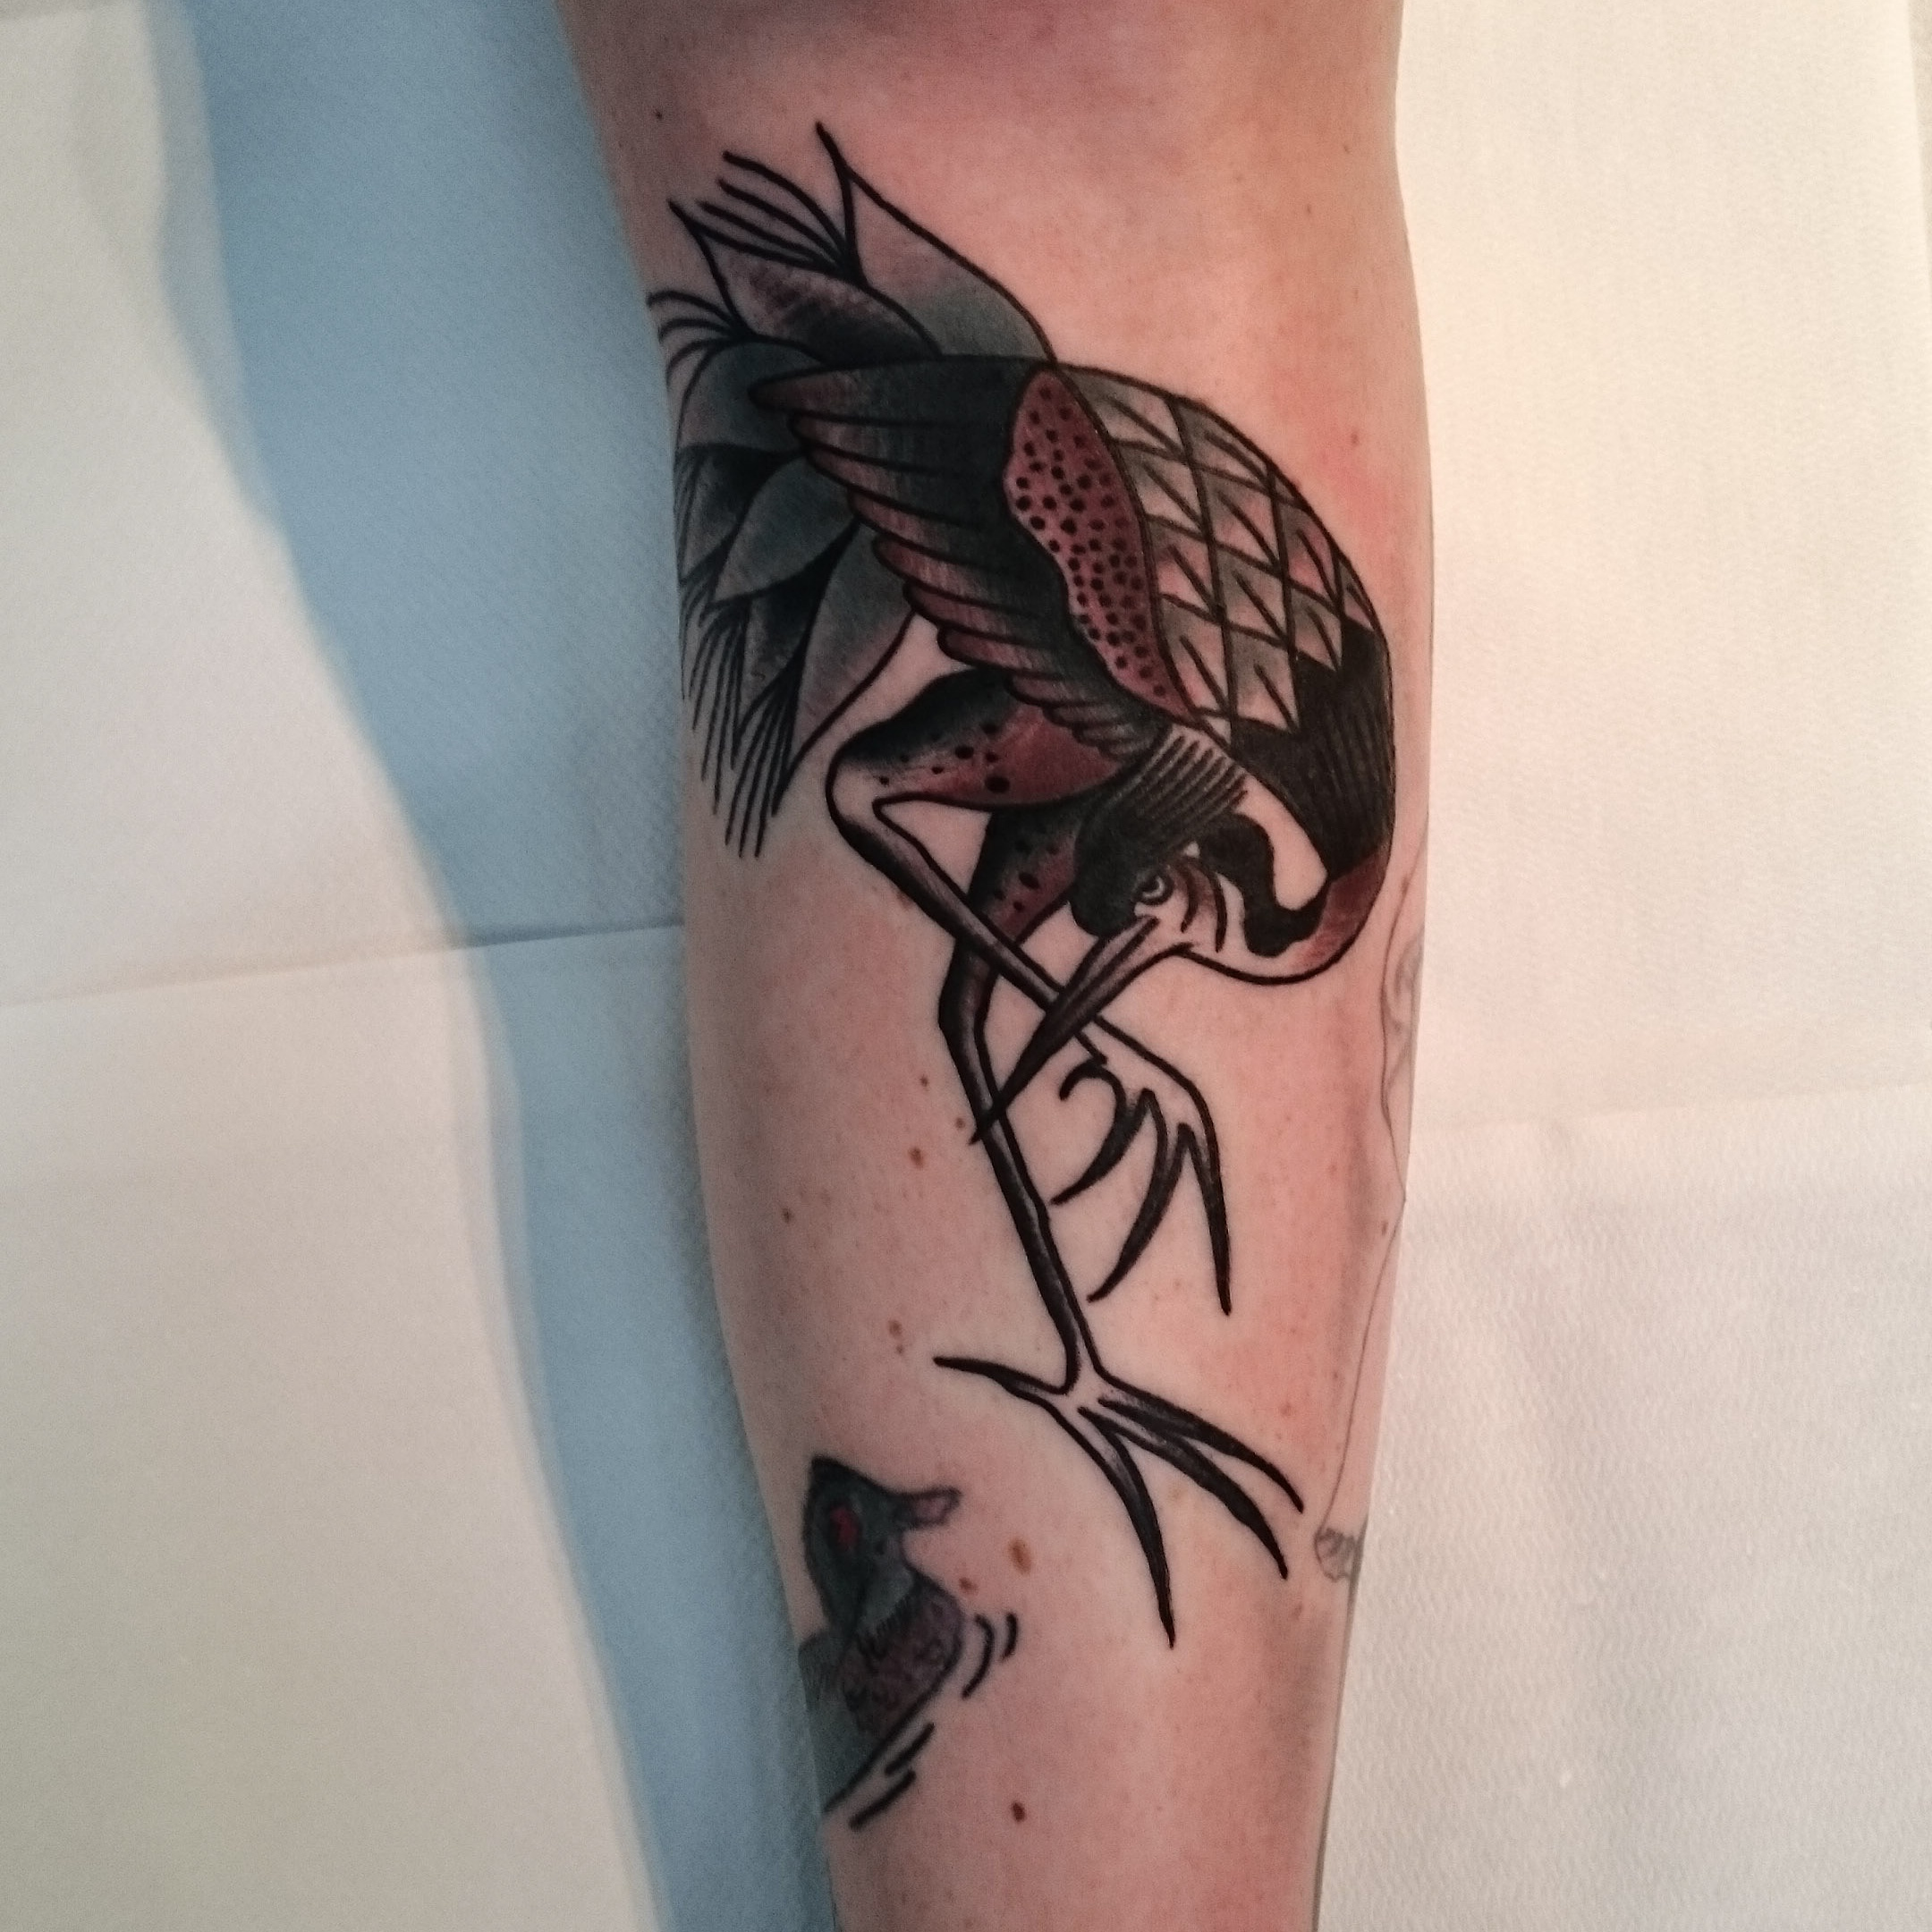 Deni Katana Black Diamond Tattoo Kalmar